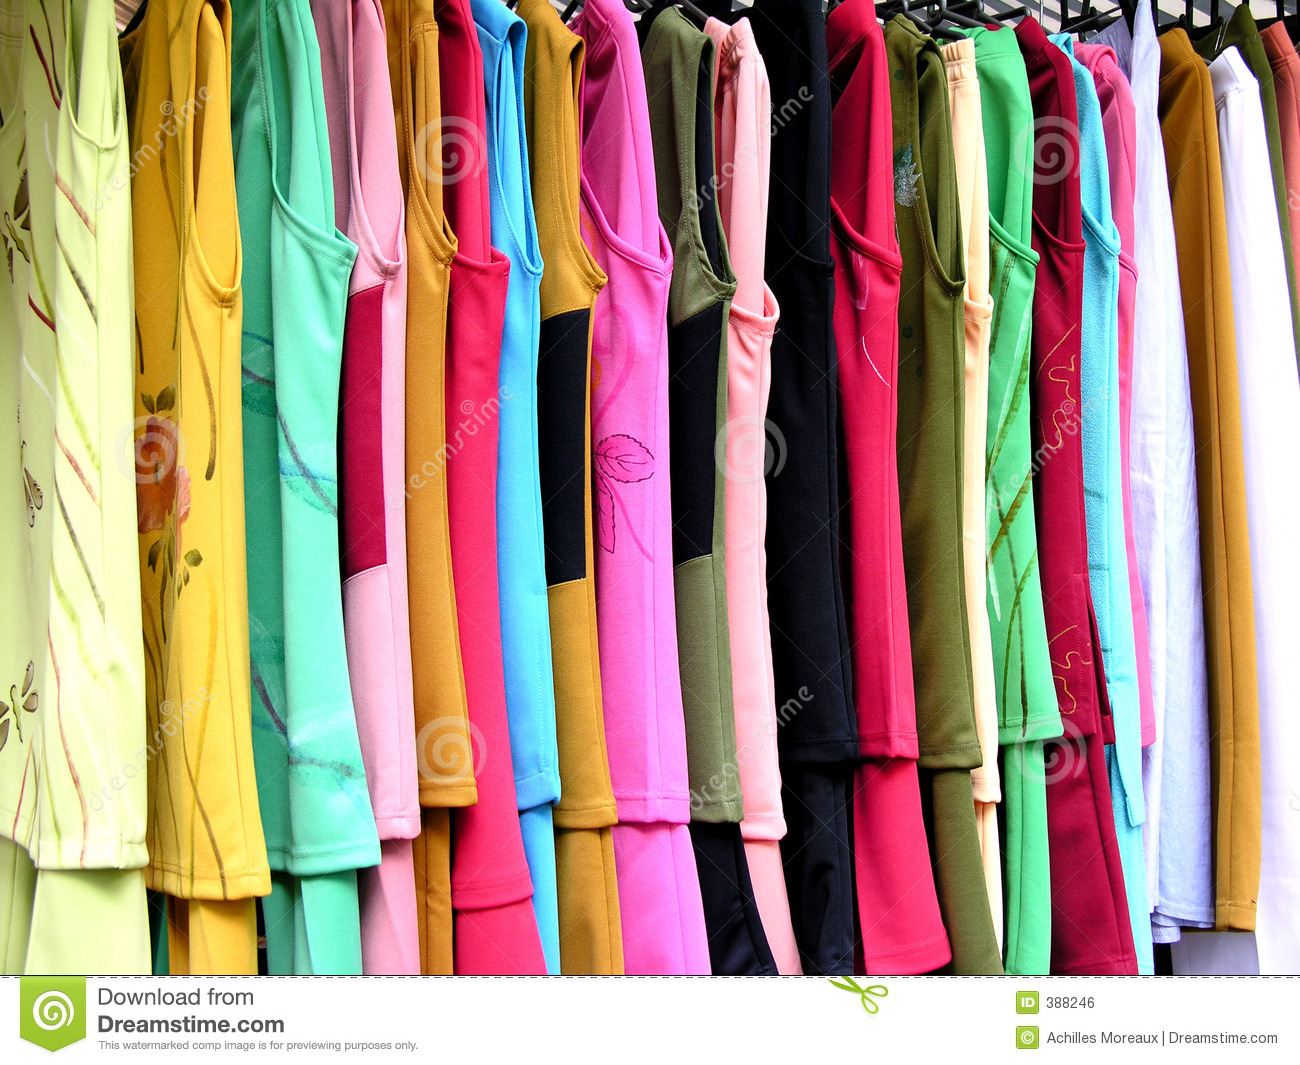 Hanging Clothes Royalty Free Stock Image - Image: 388246